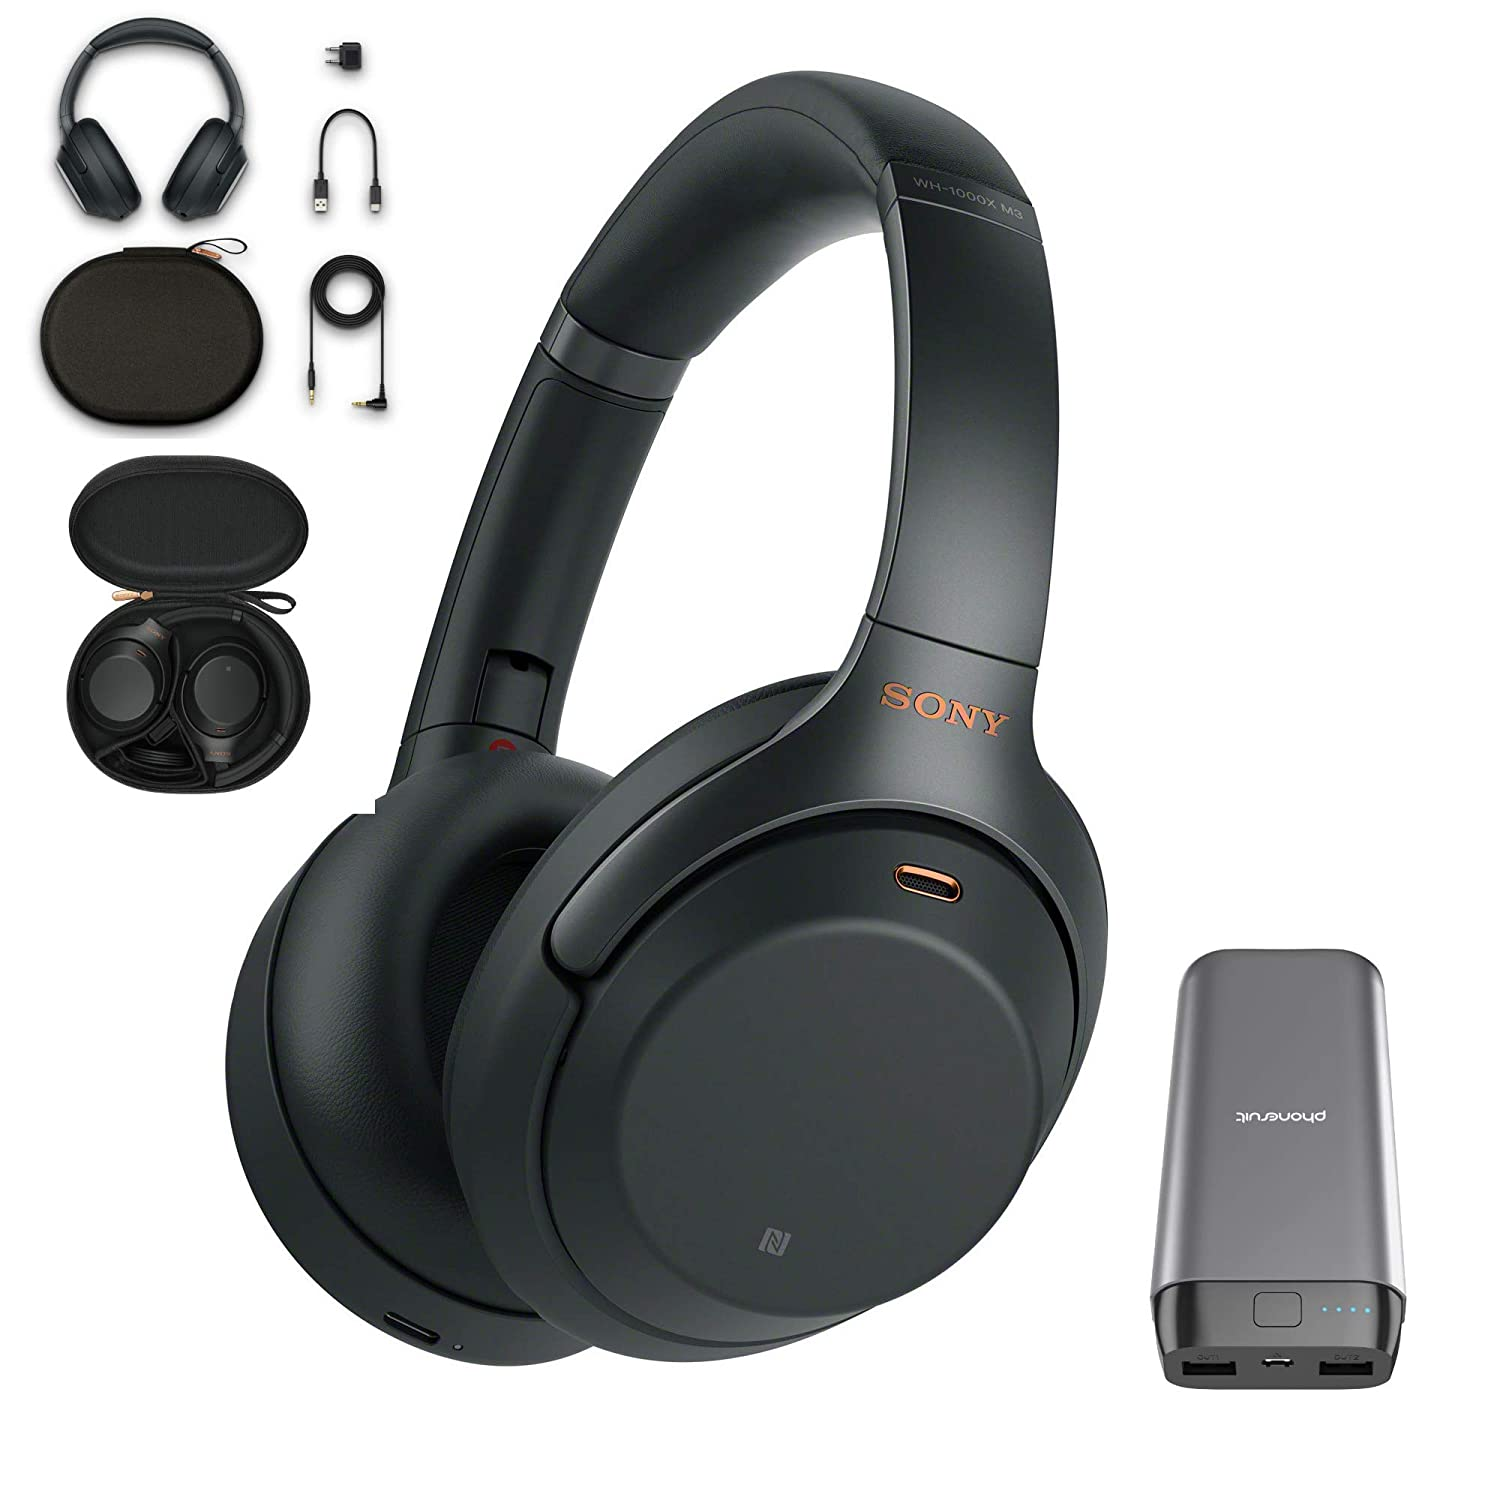 Image result for SONY MDR-1000XM3